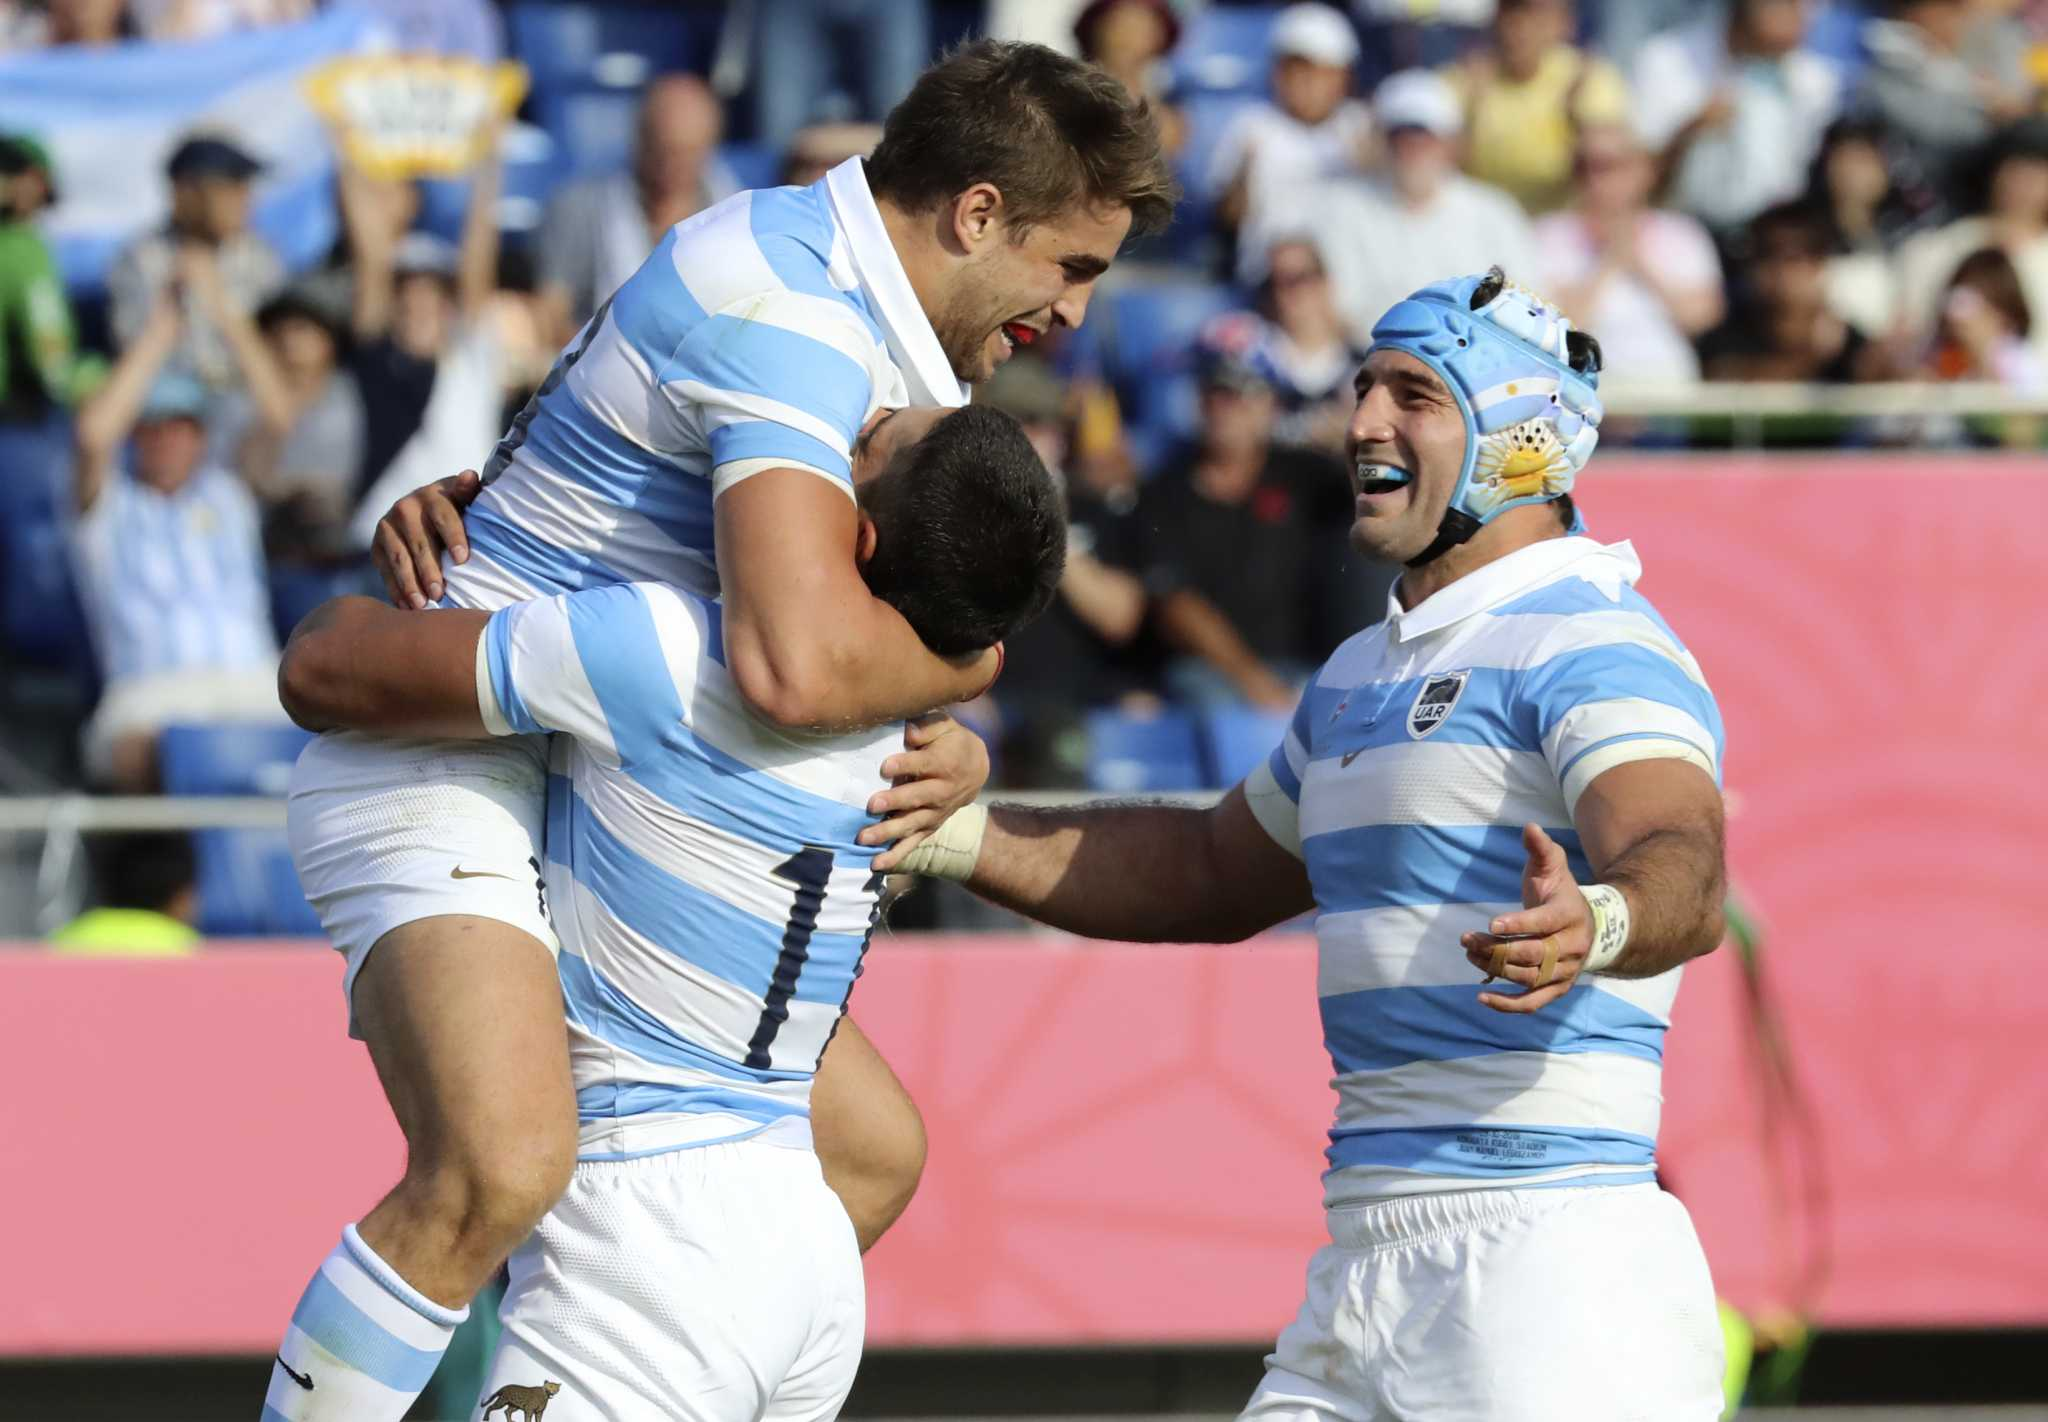 Argentina qualifies for 2023 Rugby World Cup with win over US